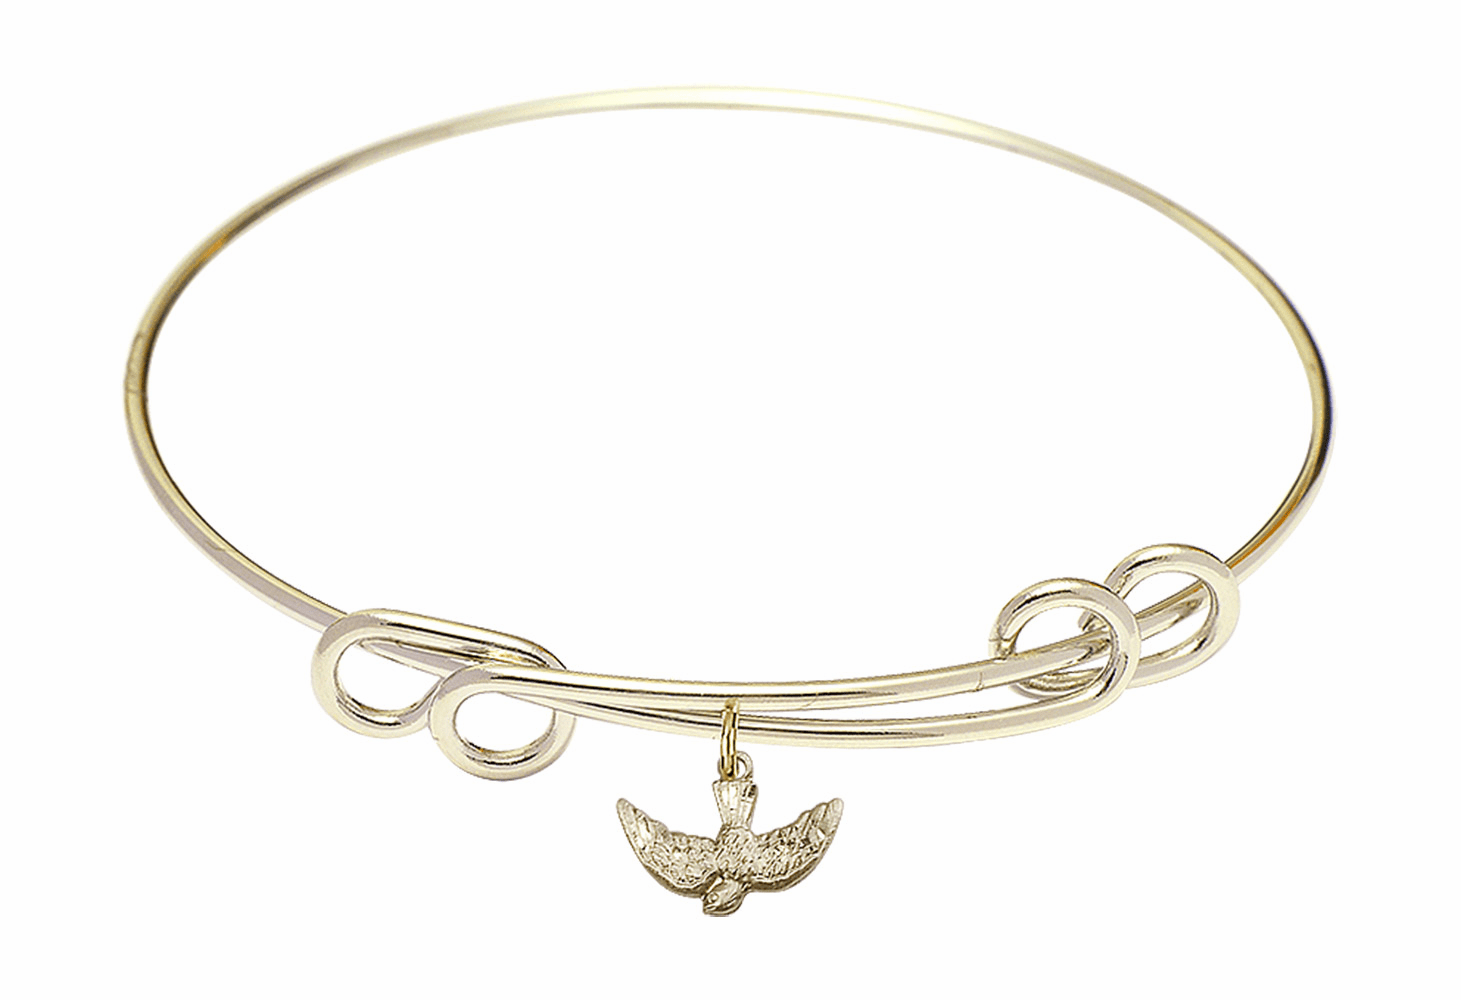 Round Double Loop Bangle Bracelet w/Holy Spirit Dove Charm by Bliss Mfg